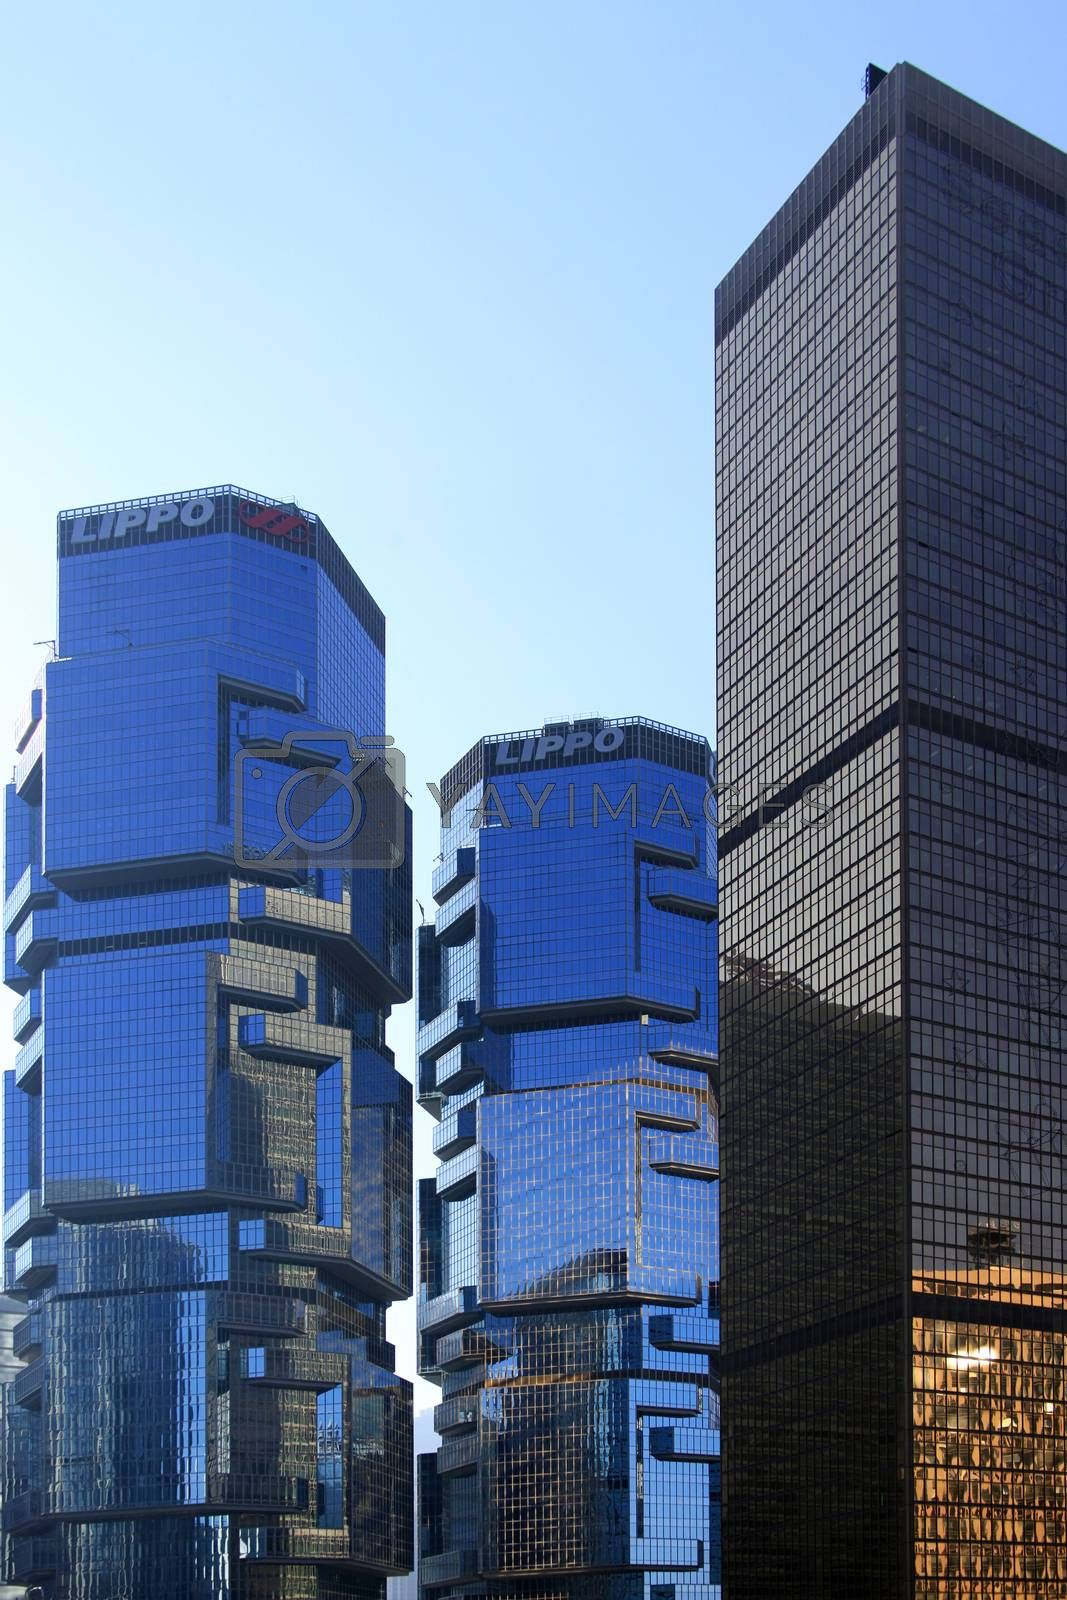 Hong Kong, Hong Kong S.A.R. - December 29, 2014: Lippo Centre. The buildings were designed by Australian architect Paul Rudolph. Tower I is 172 m, and Tower II is 186 m in Hong Kong